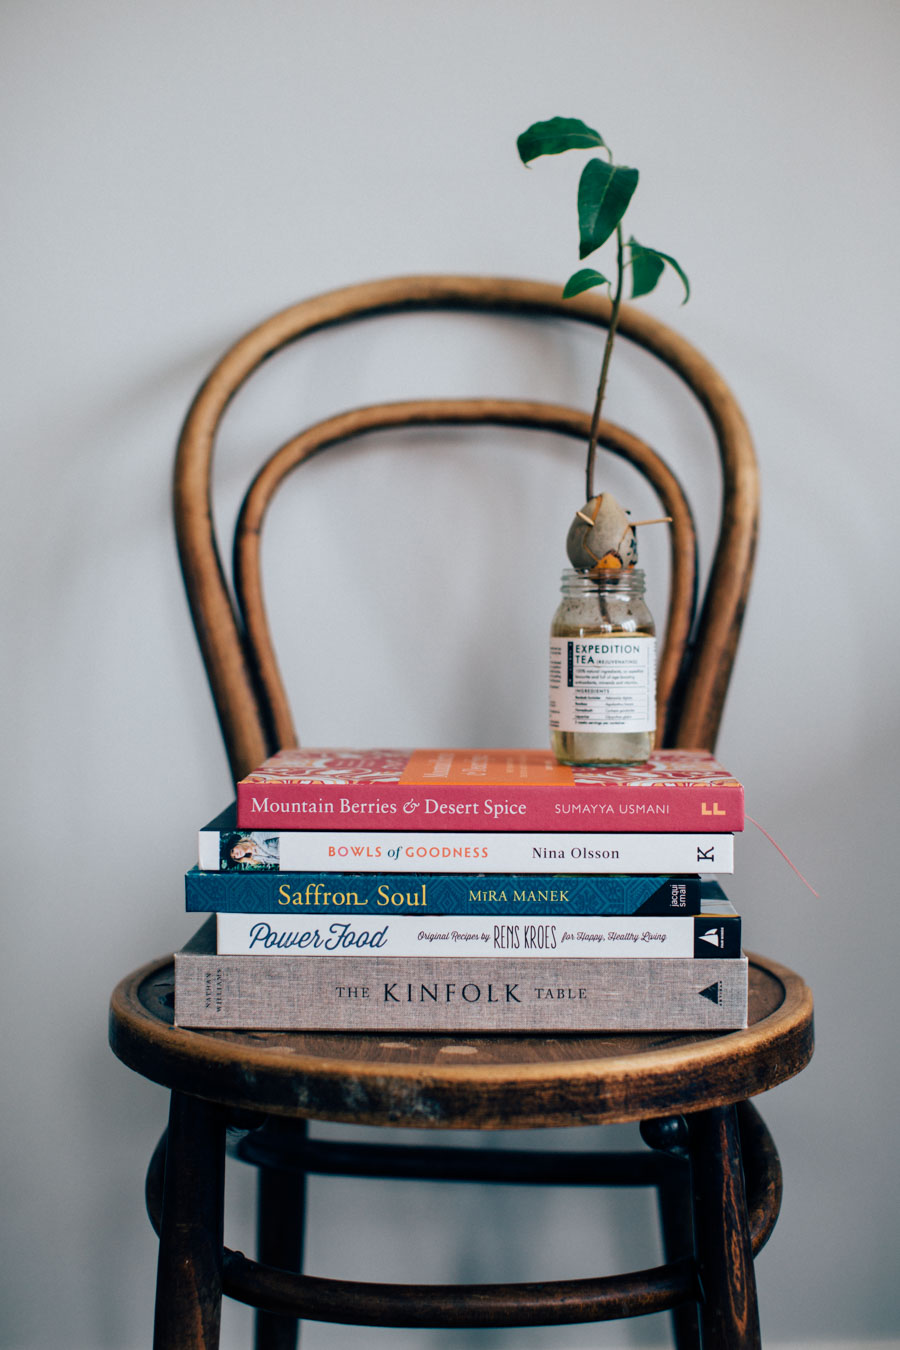 Favourite cookery books for 2017